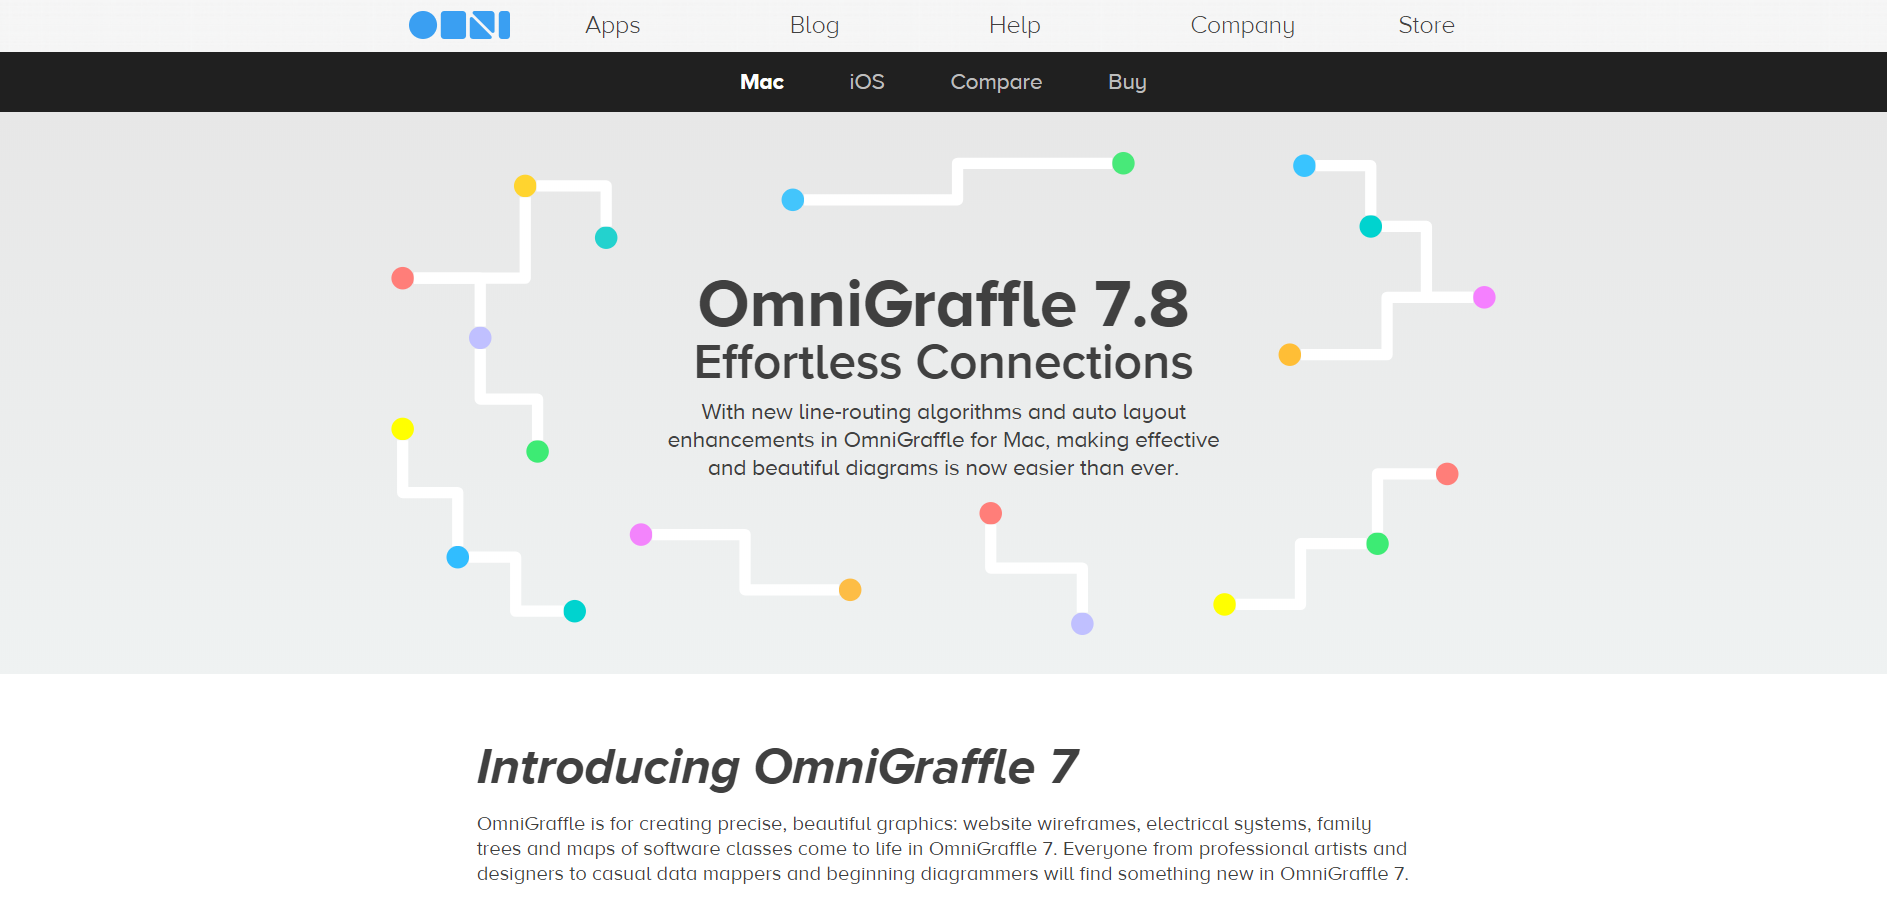 OmniGraffle website